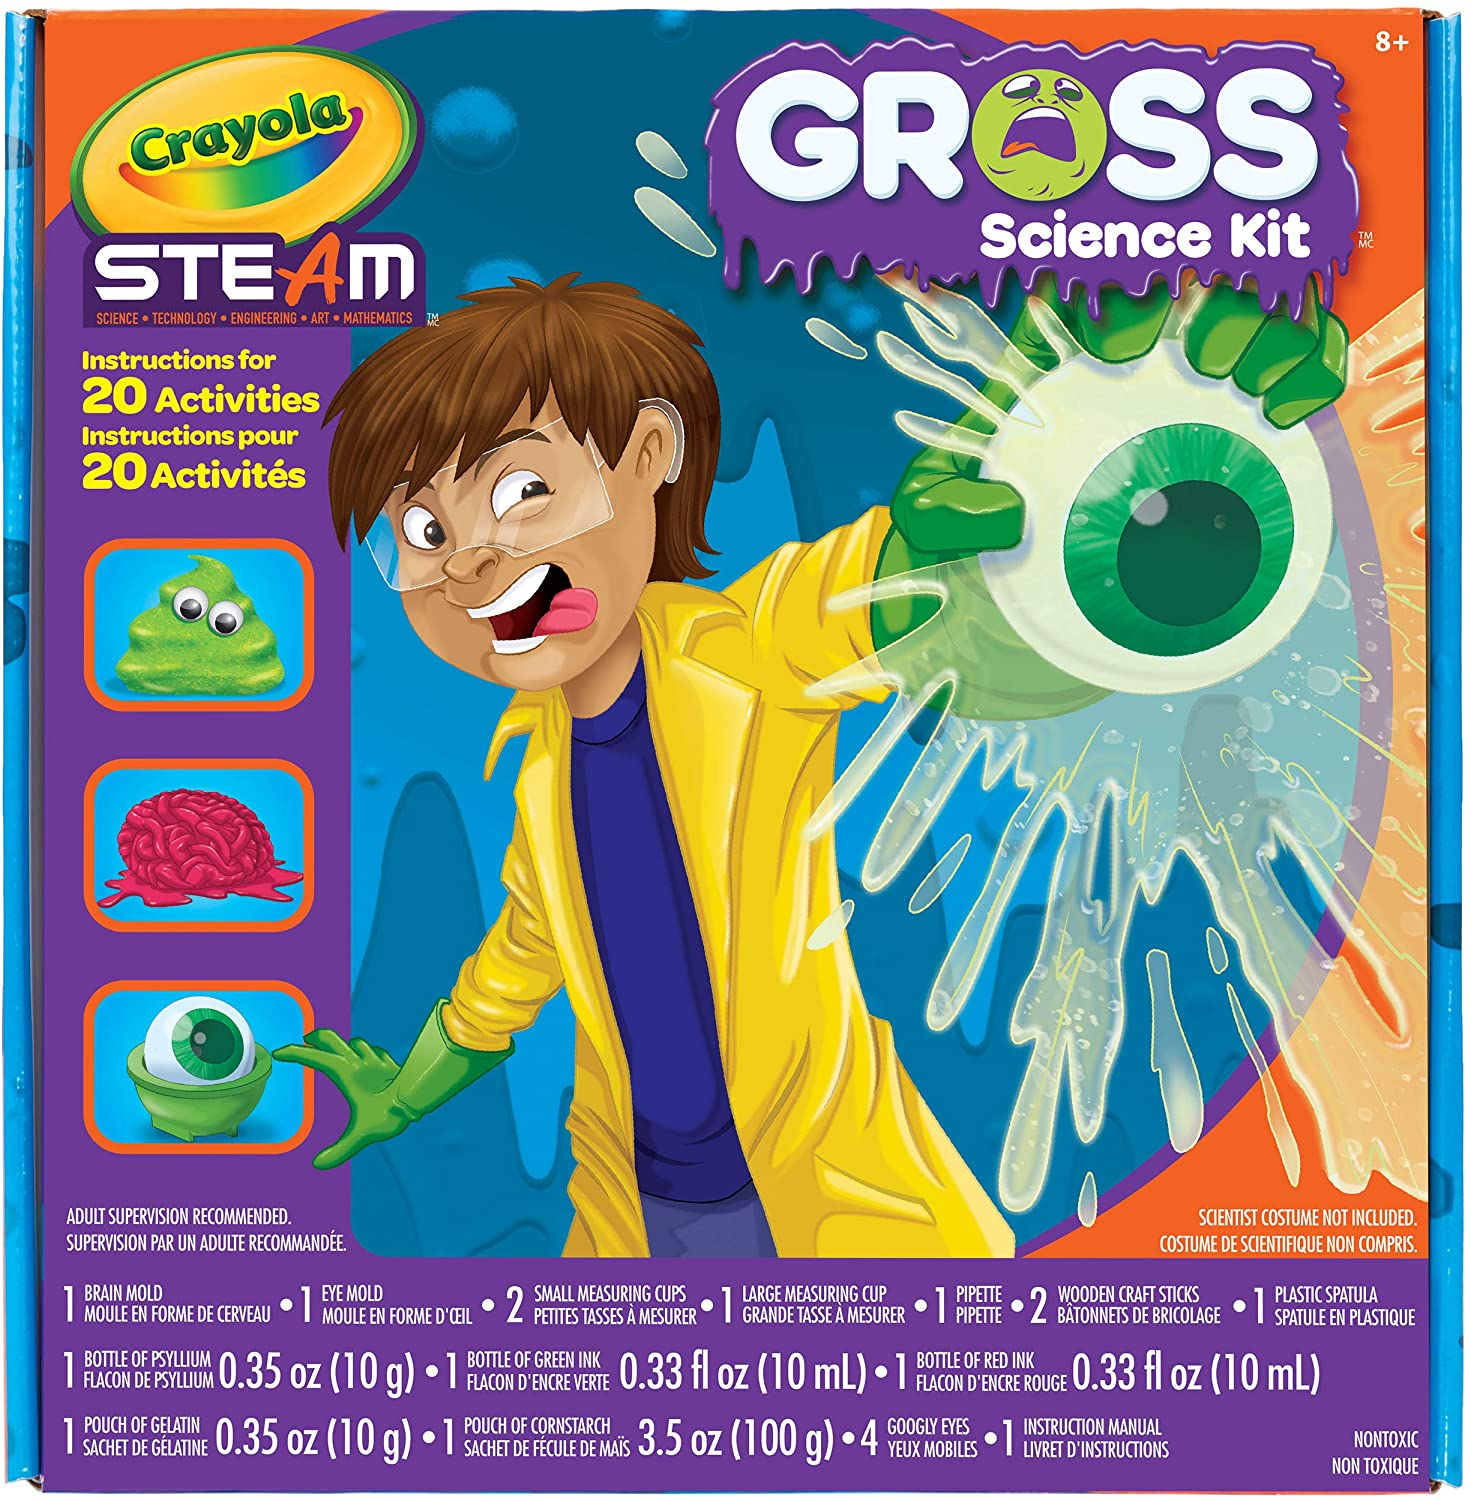 Crayola Gross Science Kit for Kids